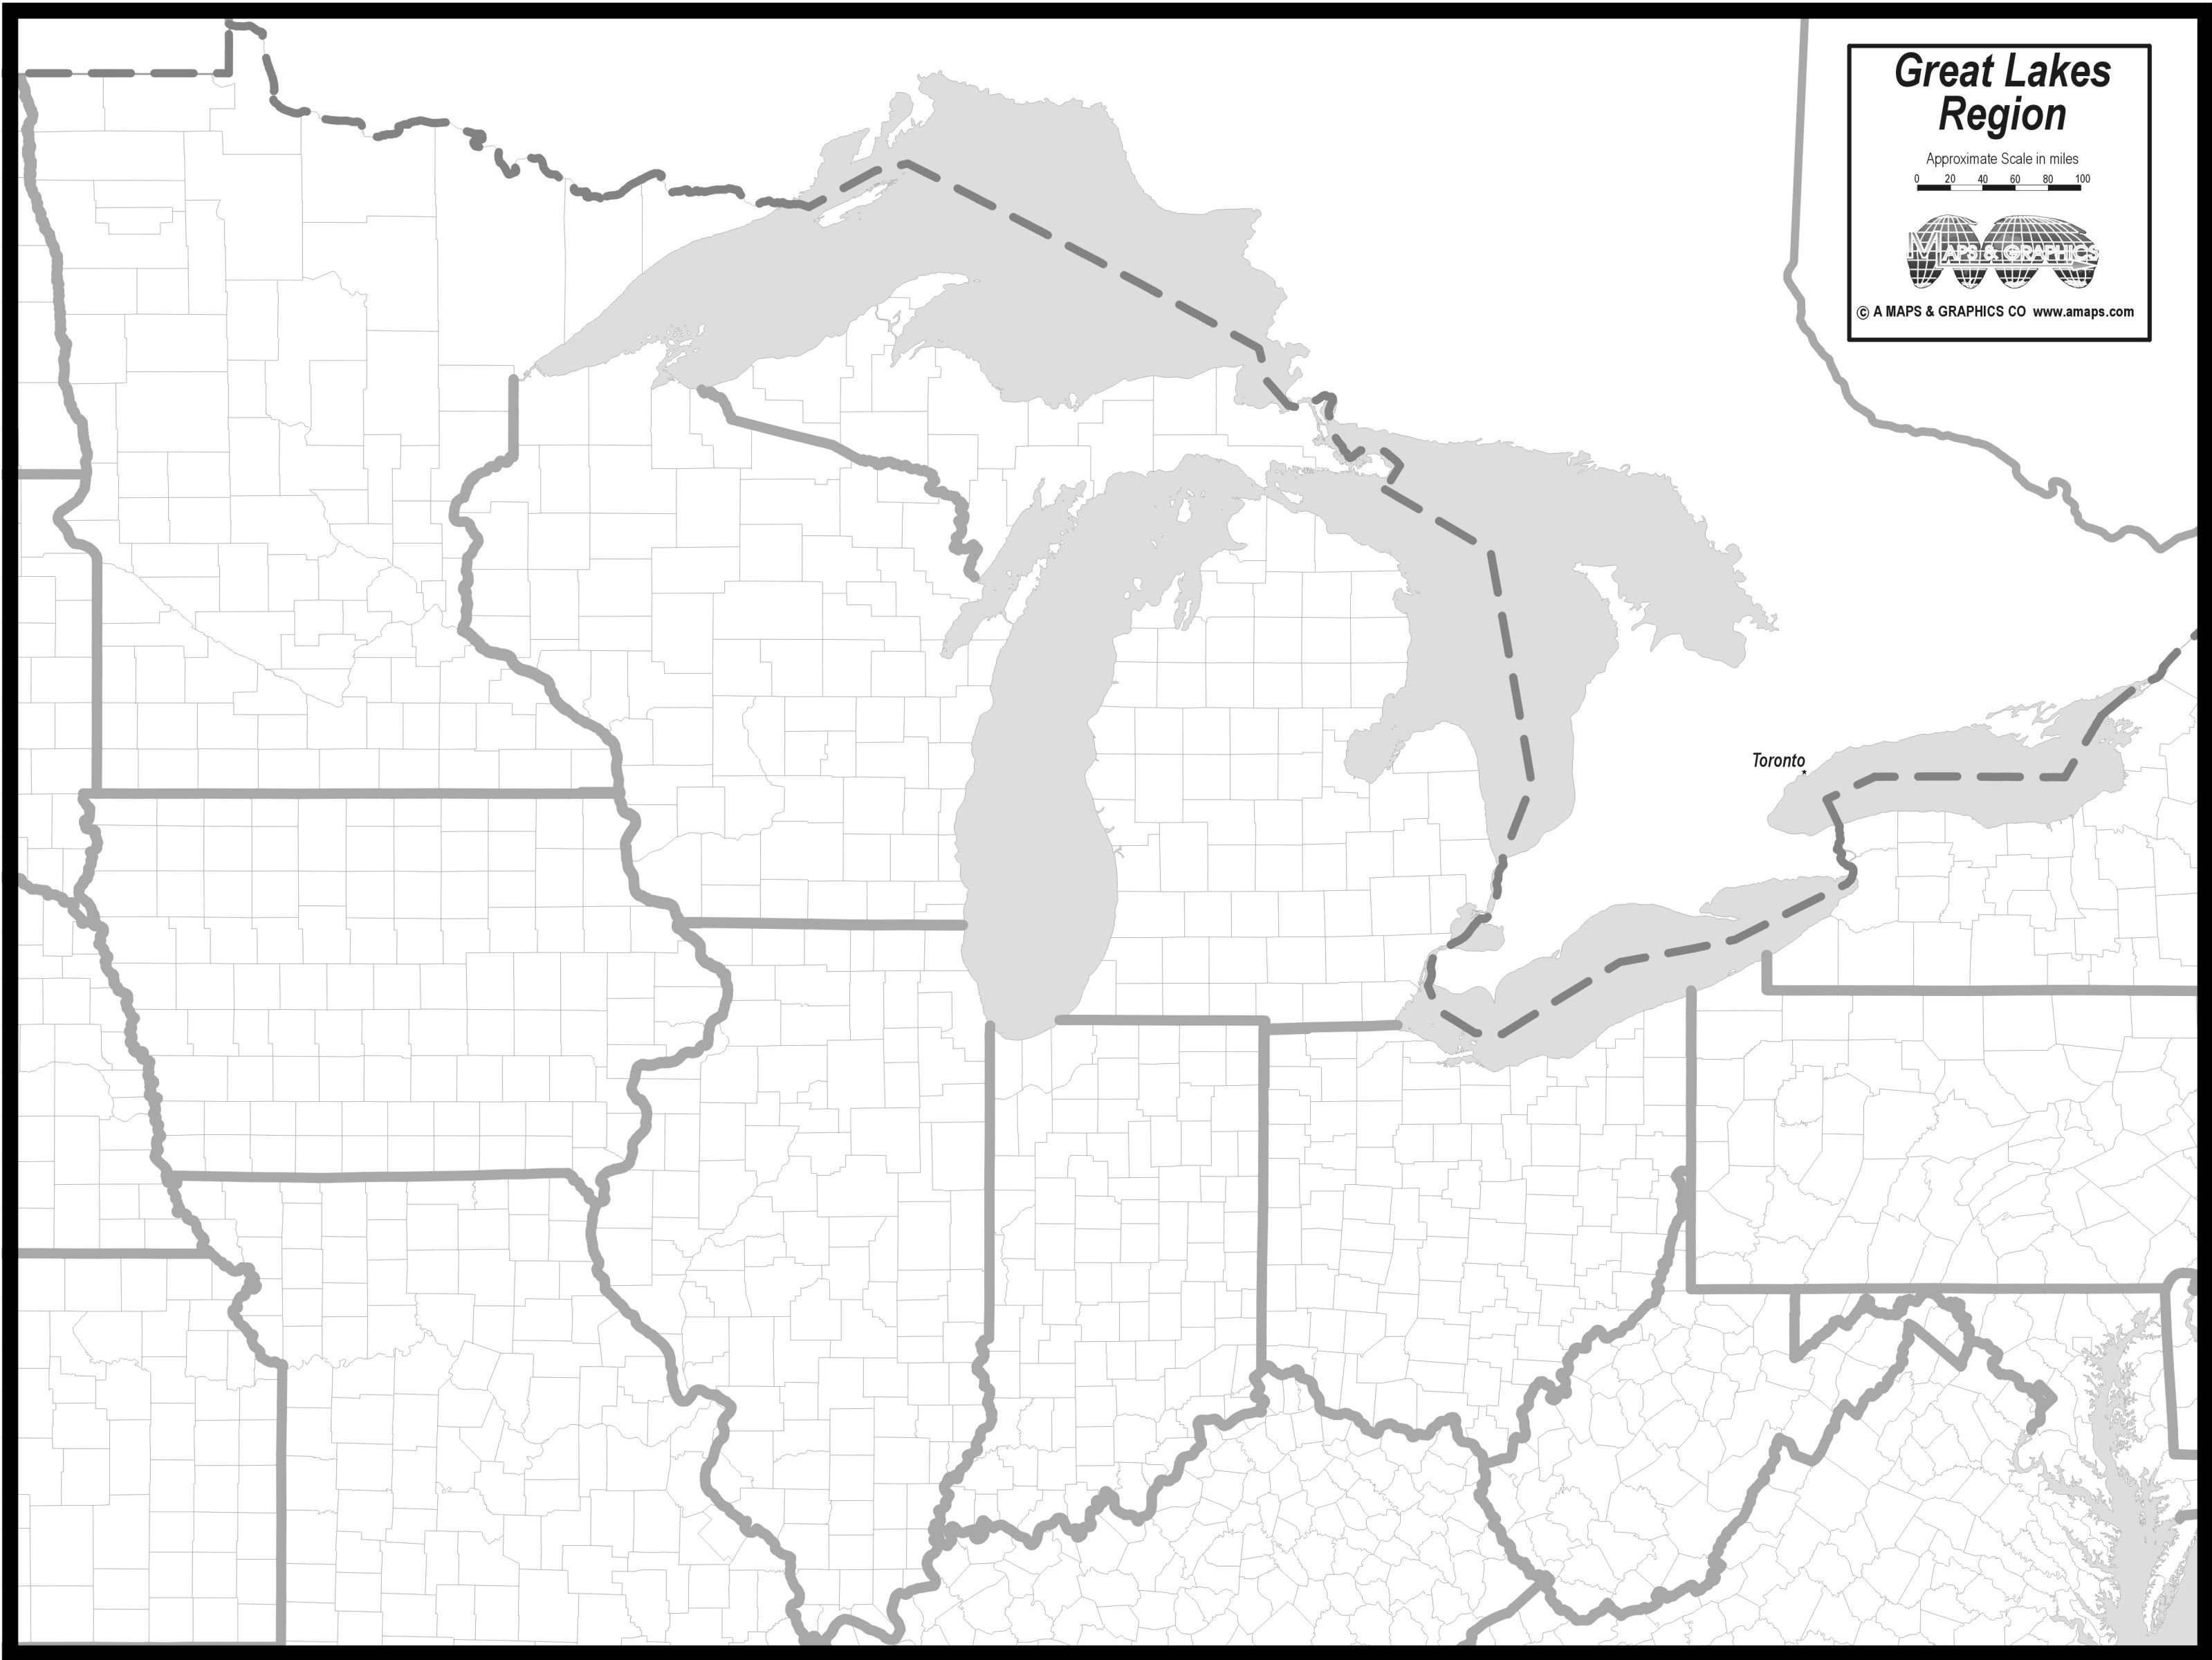 FREE MAP OF GREAT LAKES STATES | Great lakes map, Paddle to ...